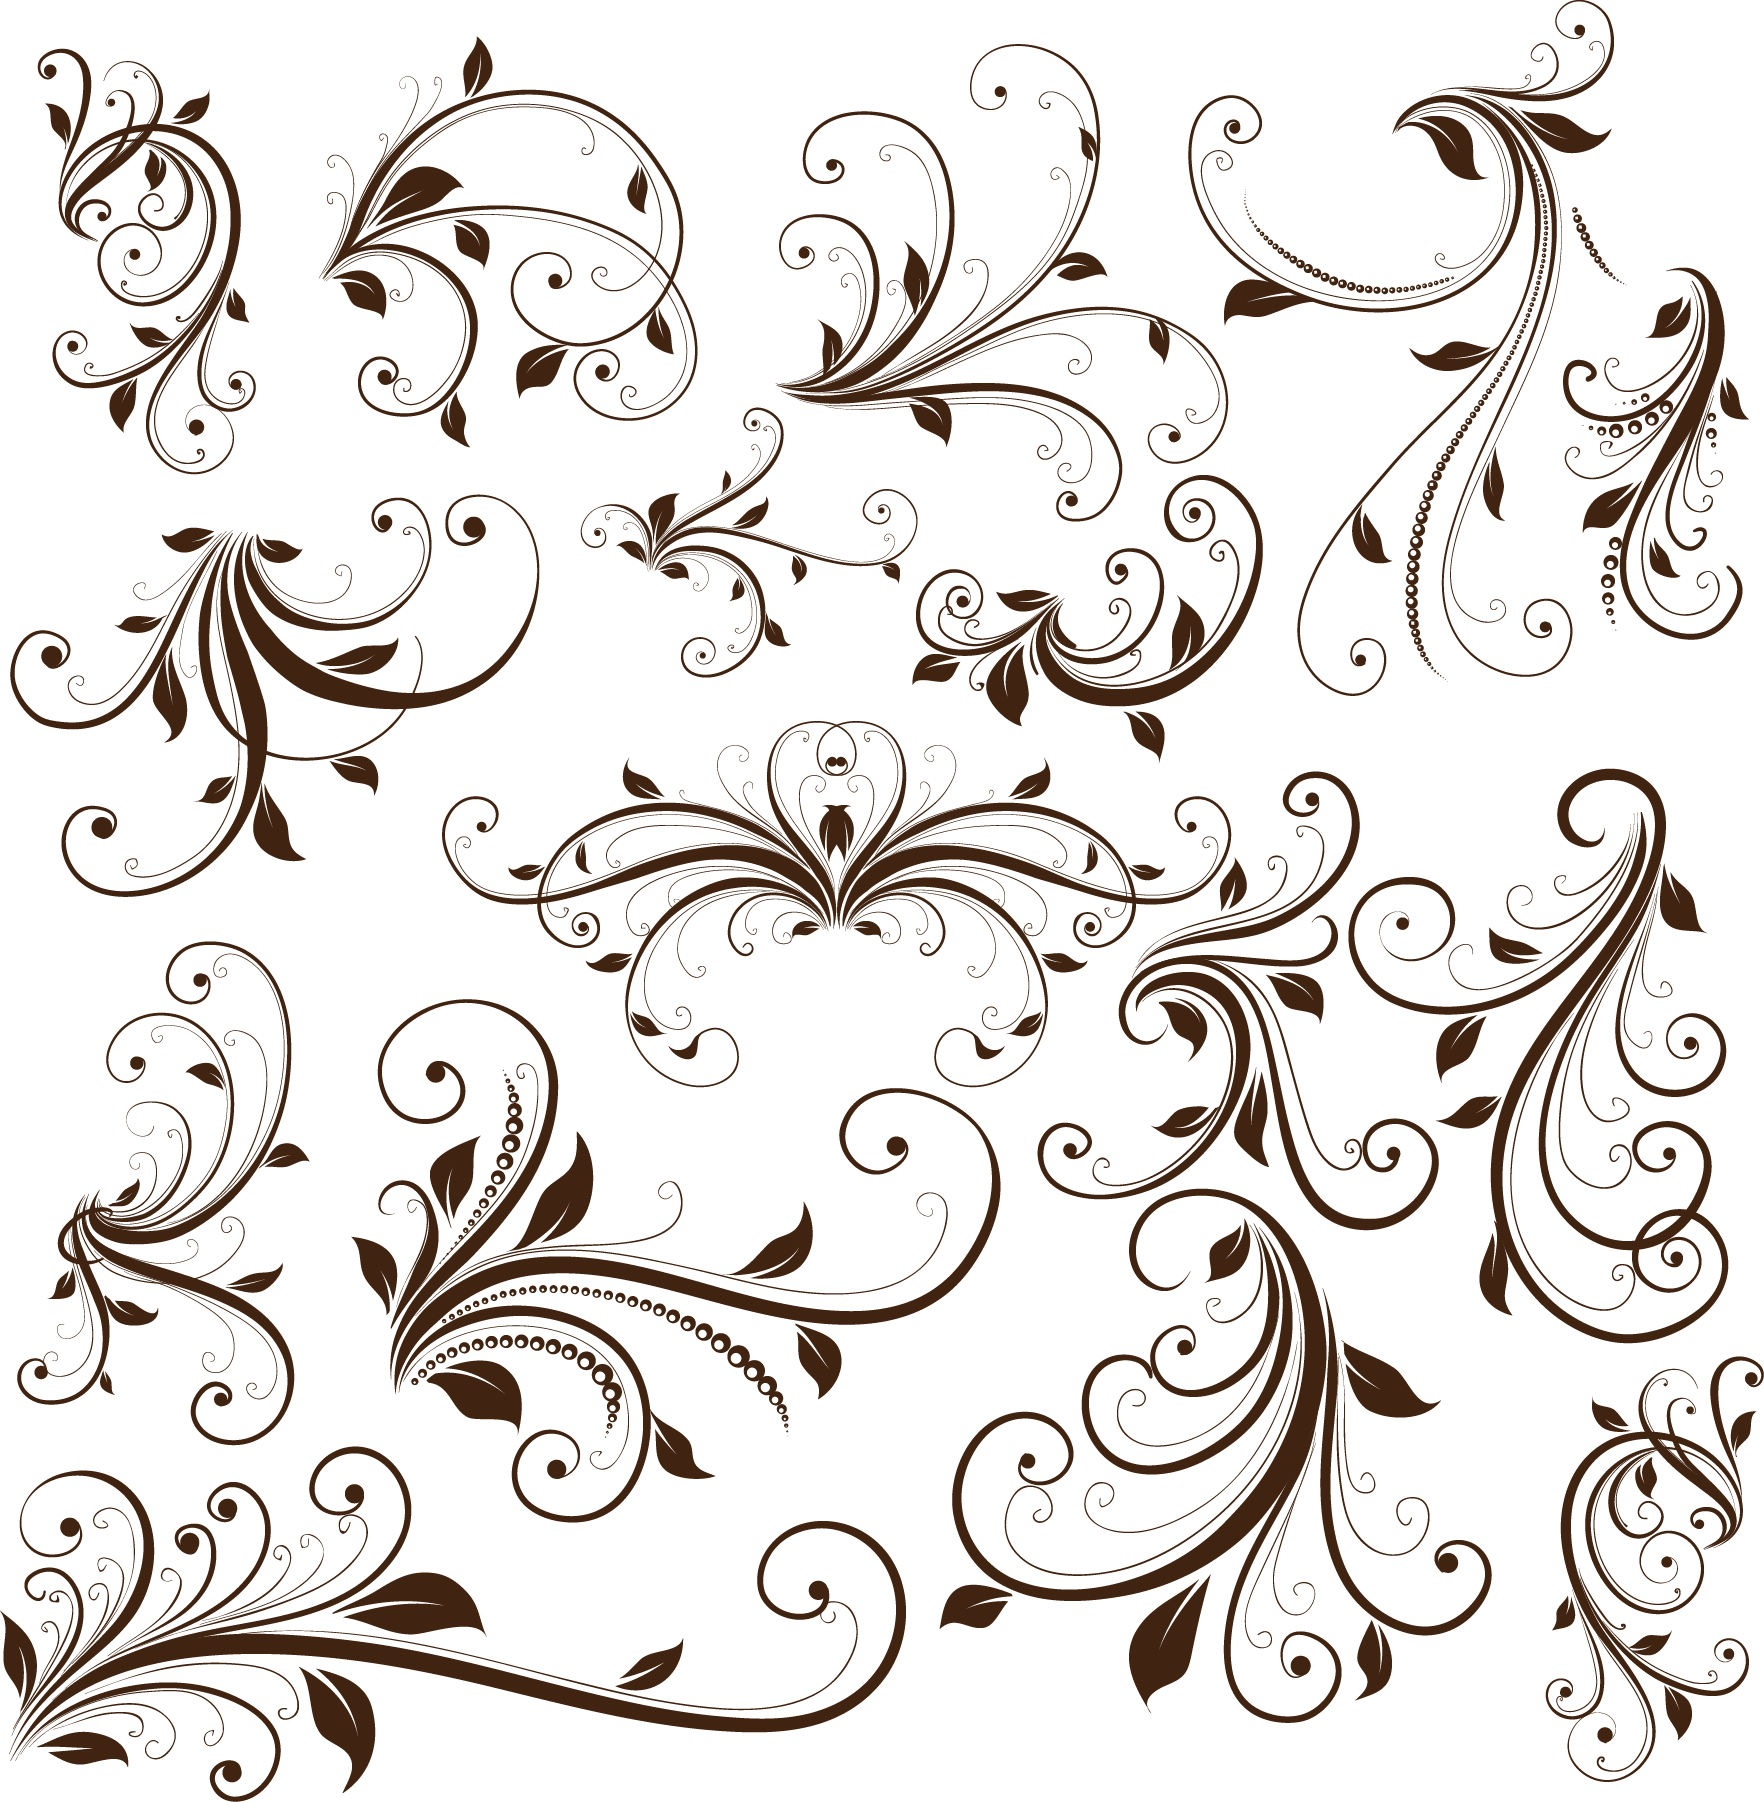 vector clipart design free - photo #12